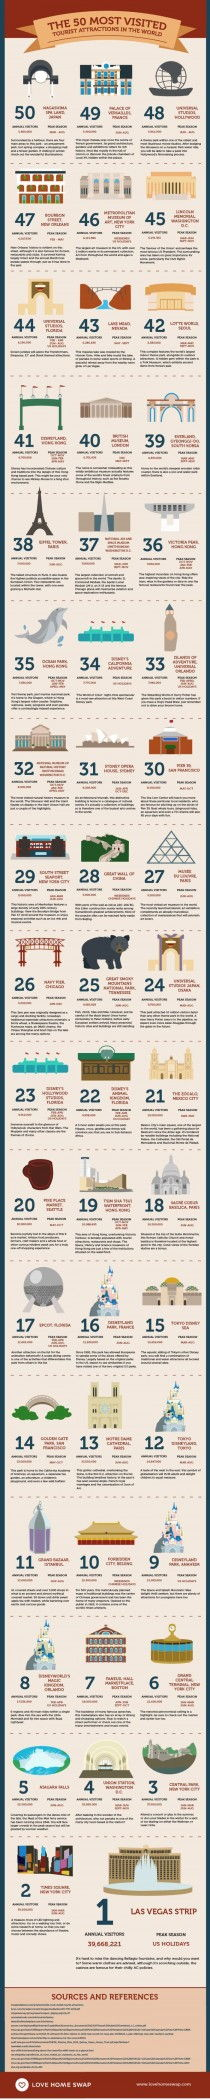 The 50 Most Visited Tourist Attractions in the World